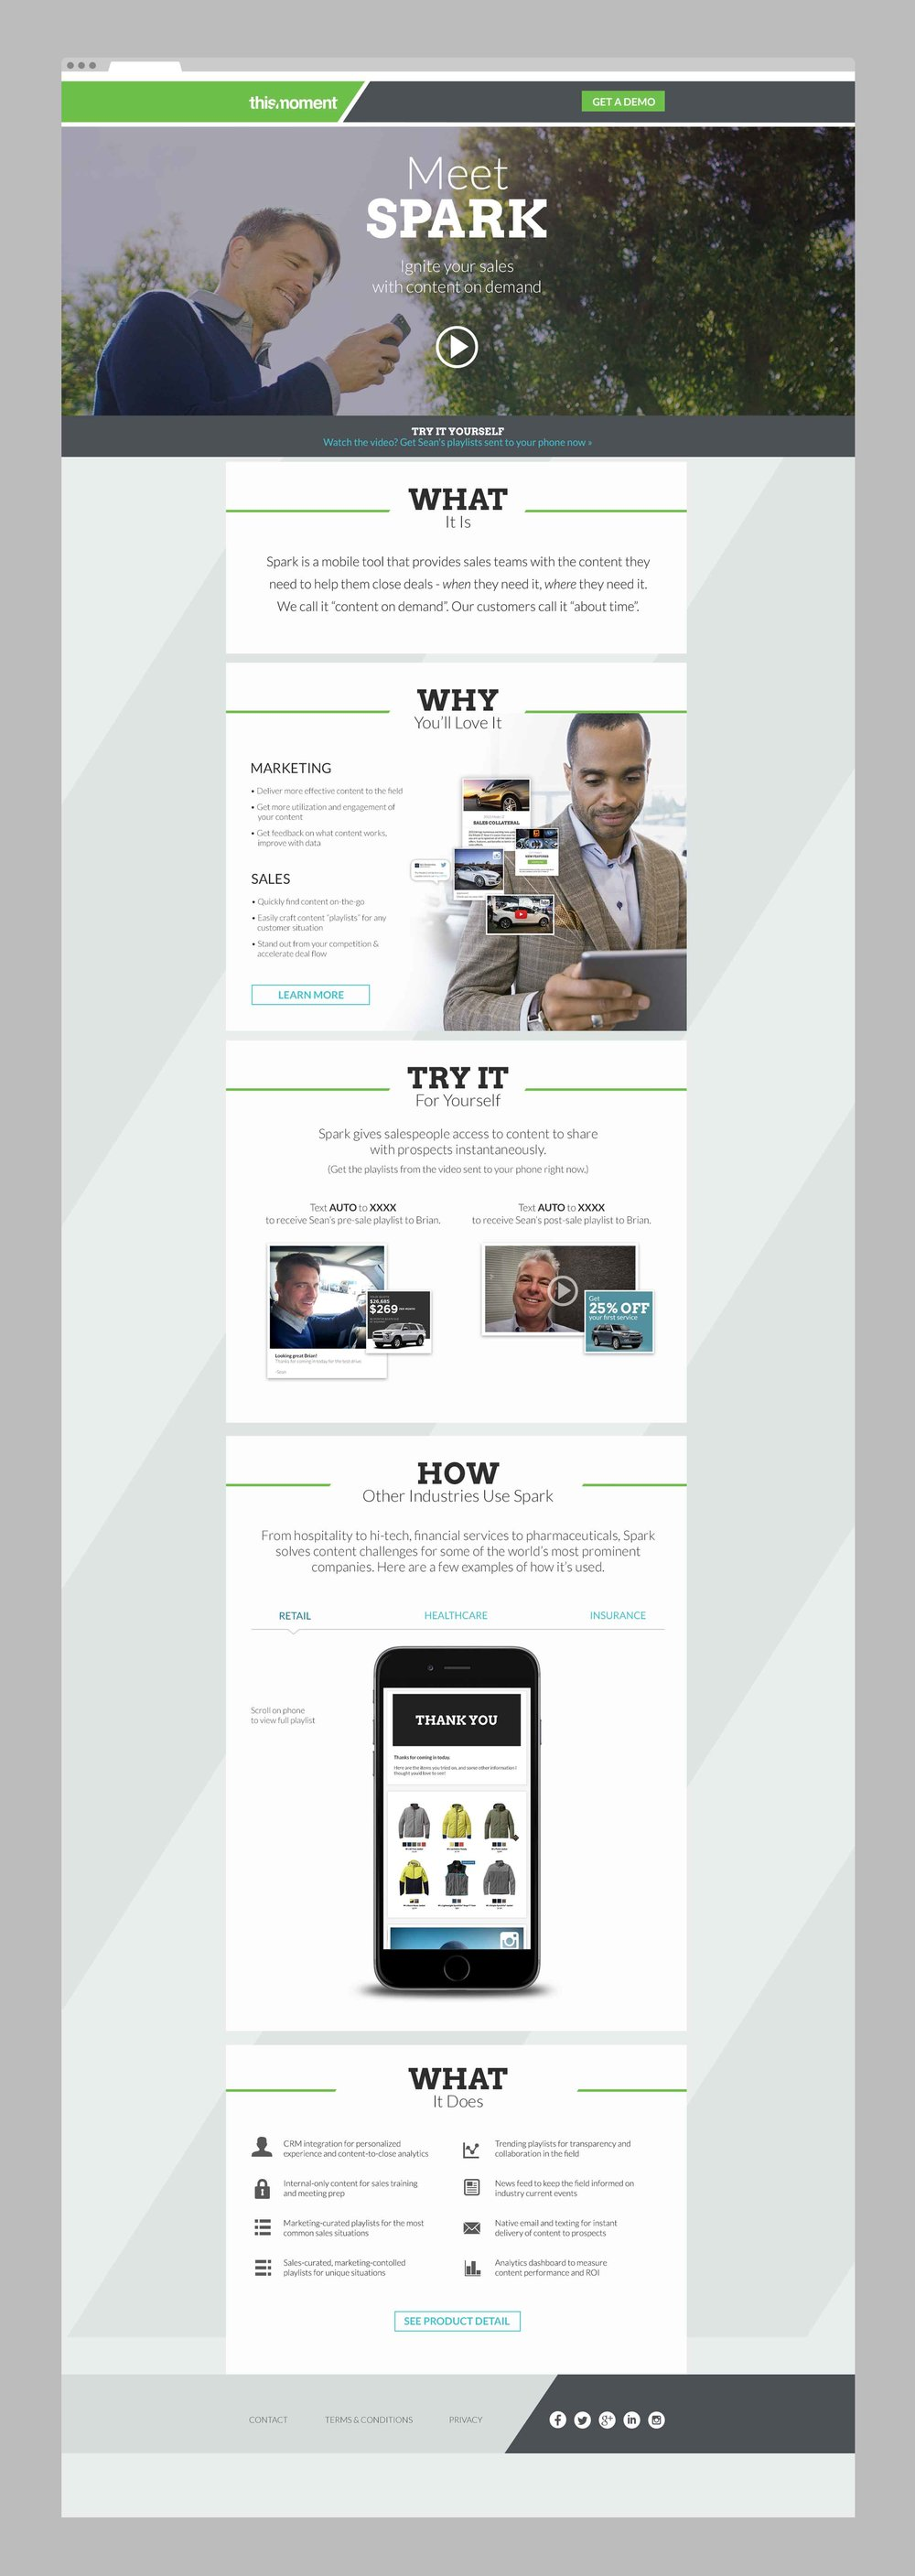 A microsite designed for the SPARK product launch.